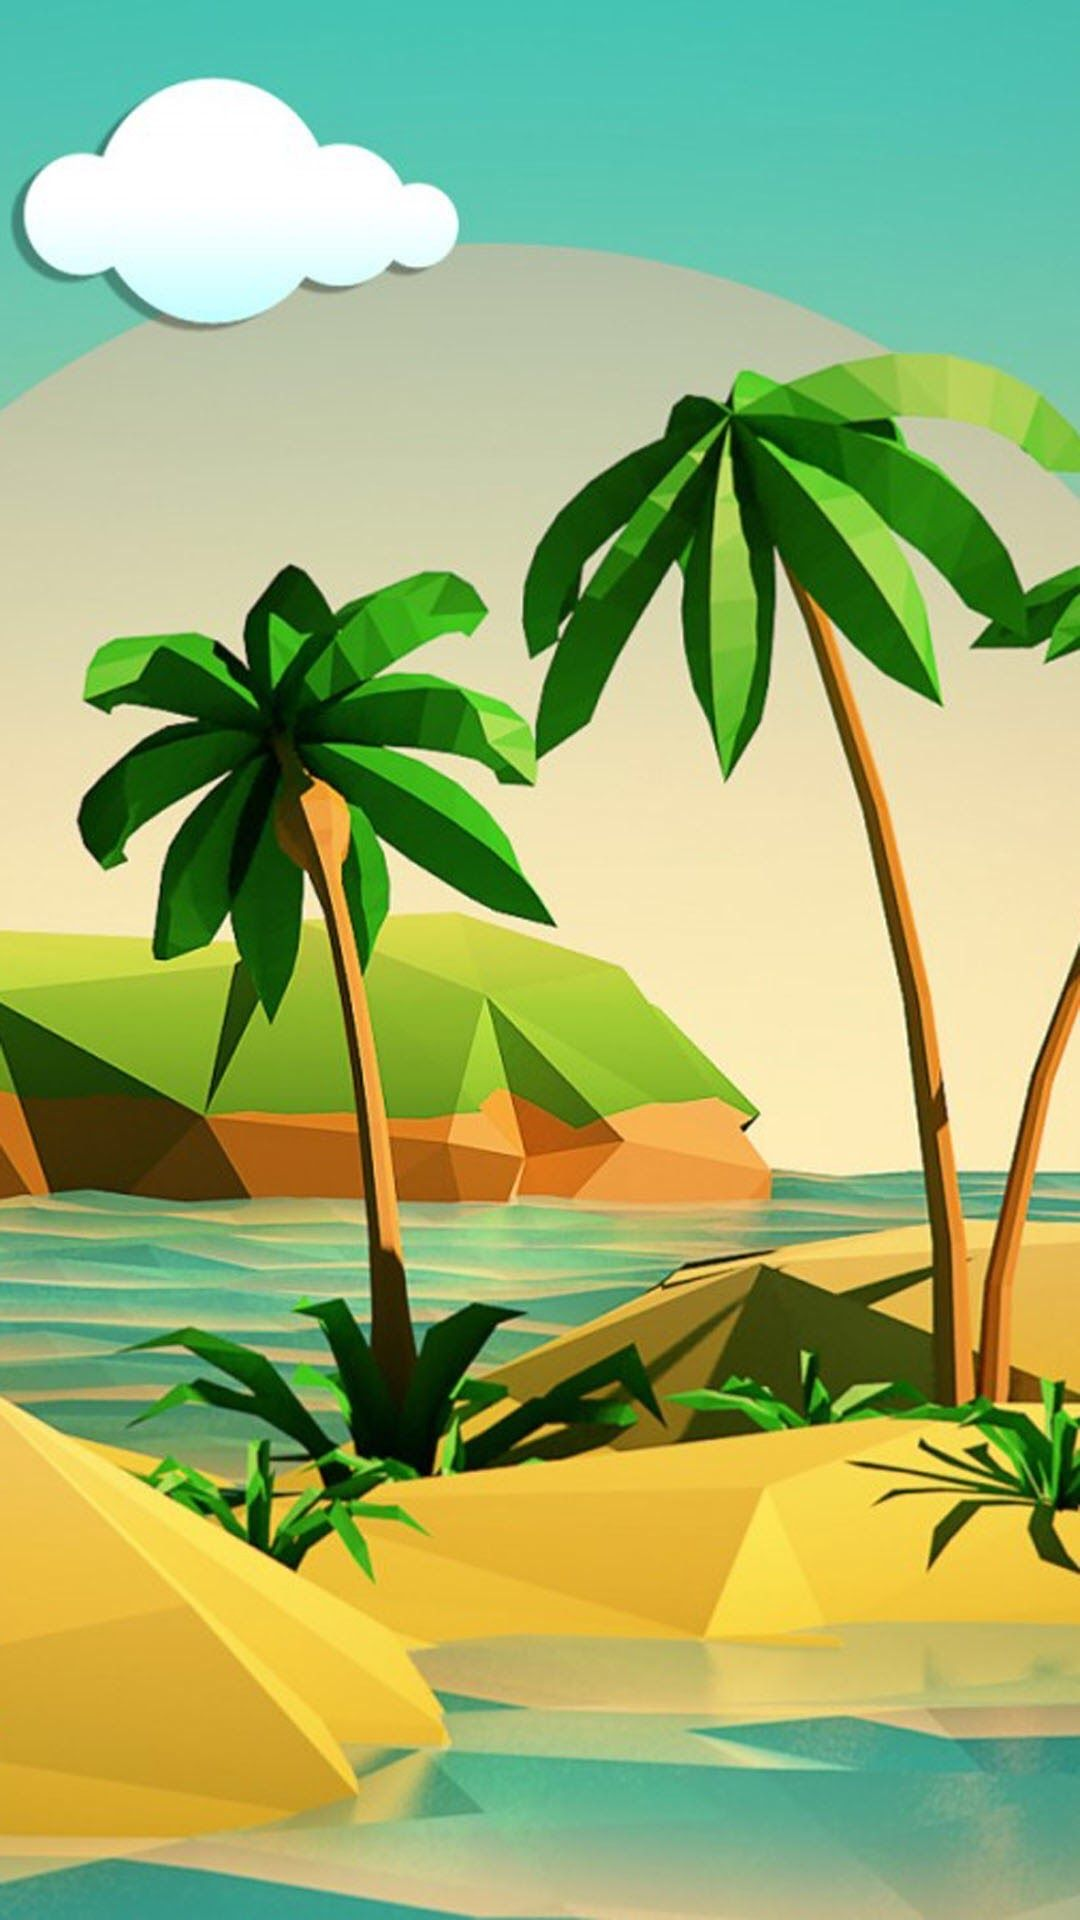 List of Cool Illustration Phone Wallpaper HD This Month by Uploaded by user